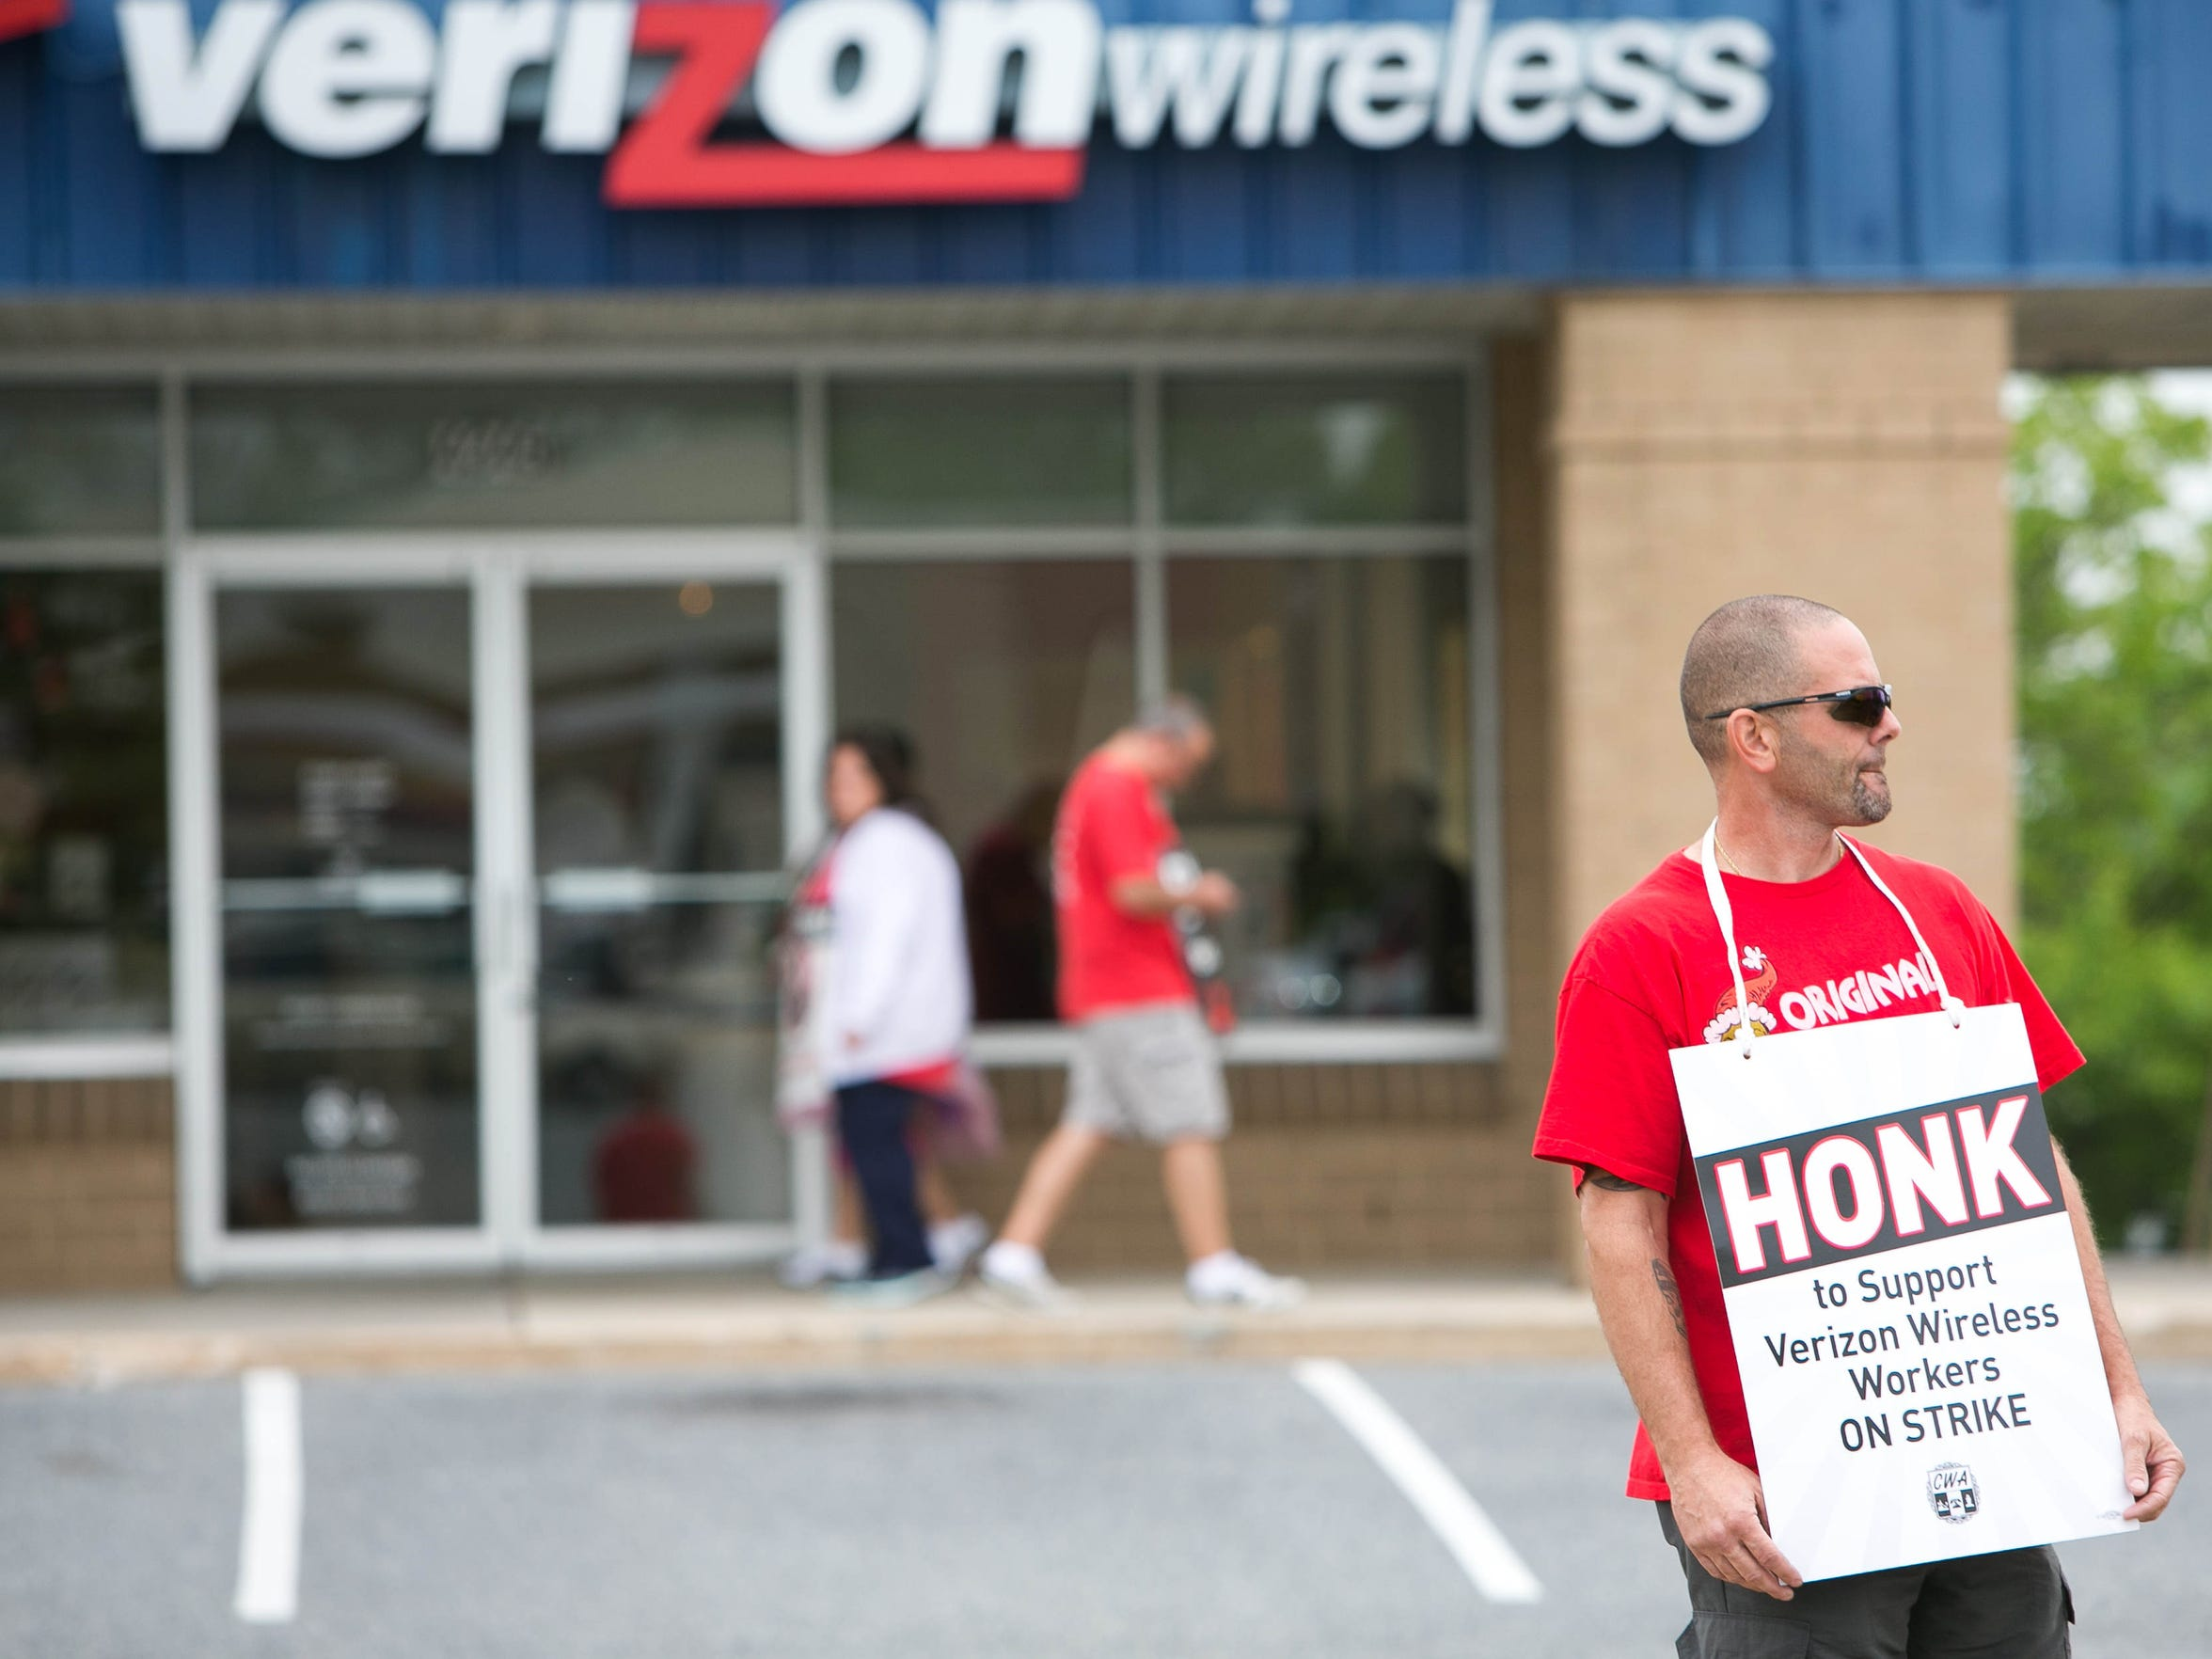 """Carrying a sign that reads """"Honk to support Verizon Wirless workers on strike"""", John Inzaina, a Verizon employee for 25 years, pickets at the Verizon store on Kirkwood Highway in Wilmington."""